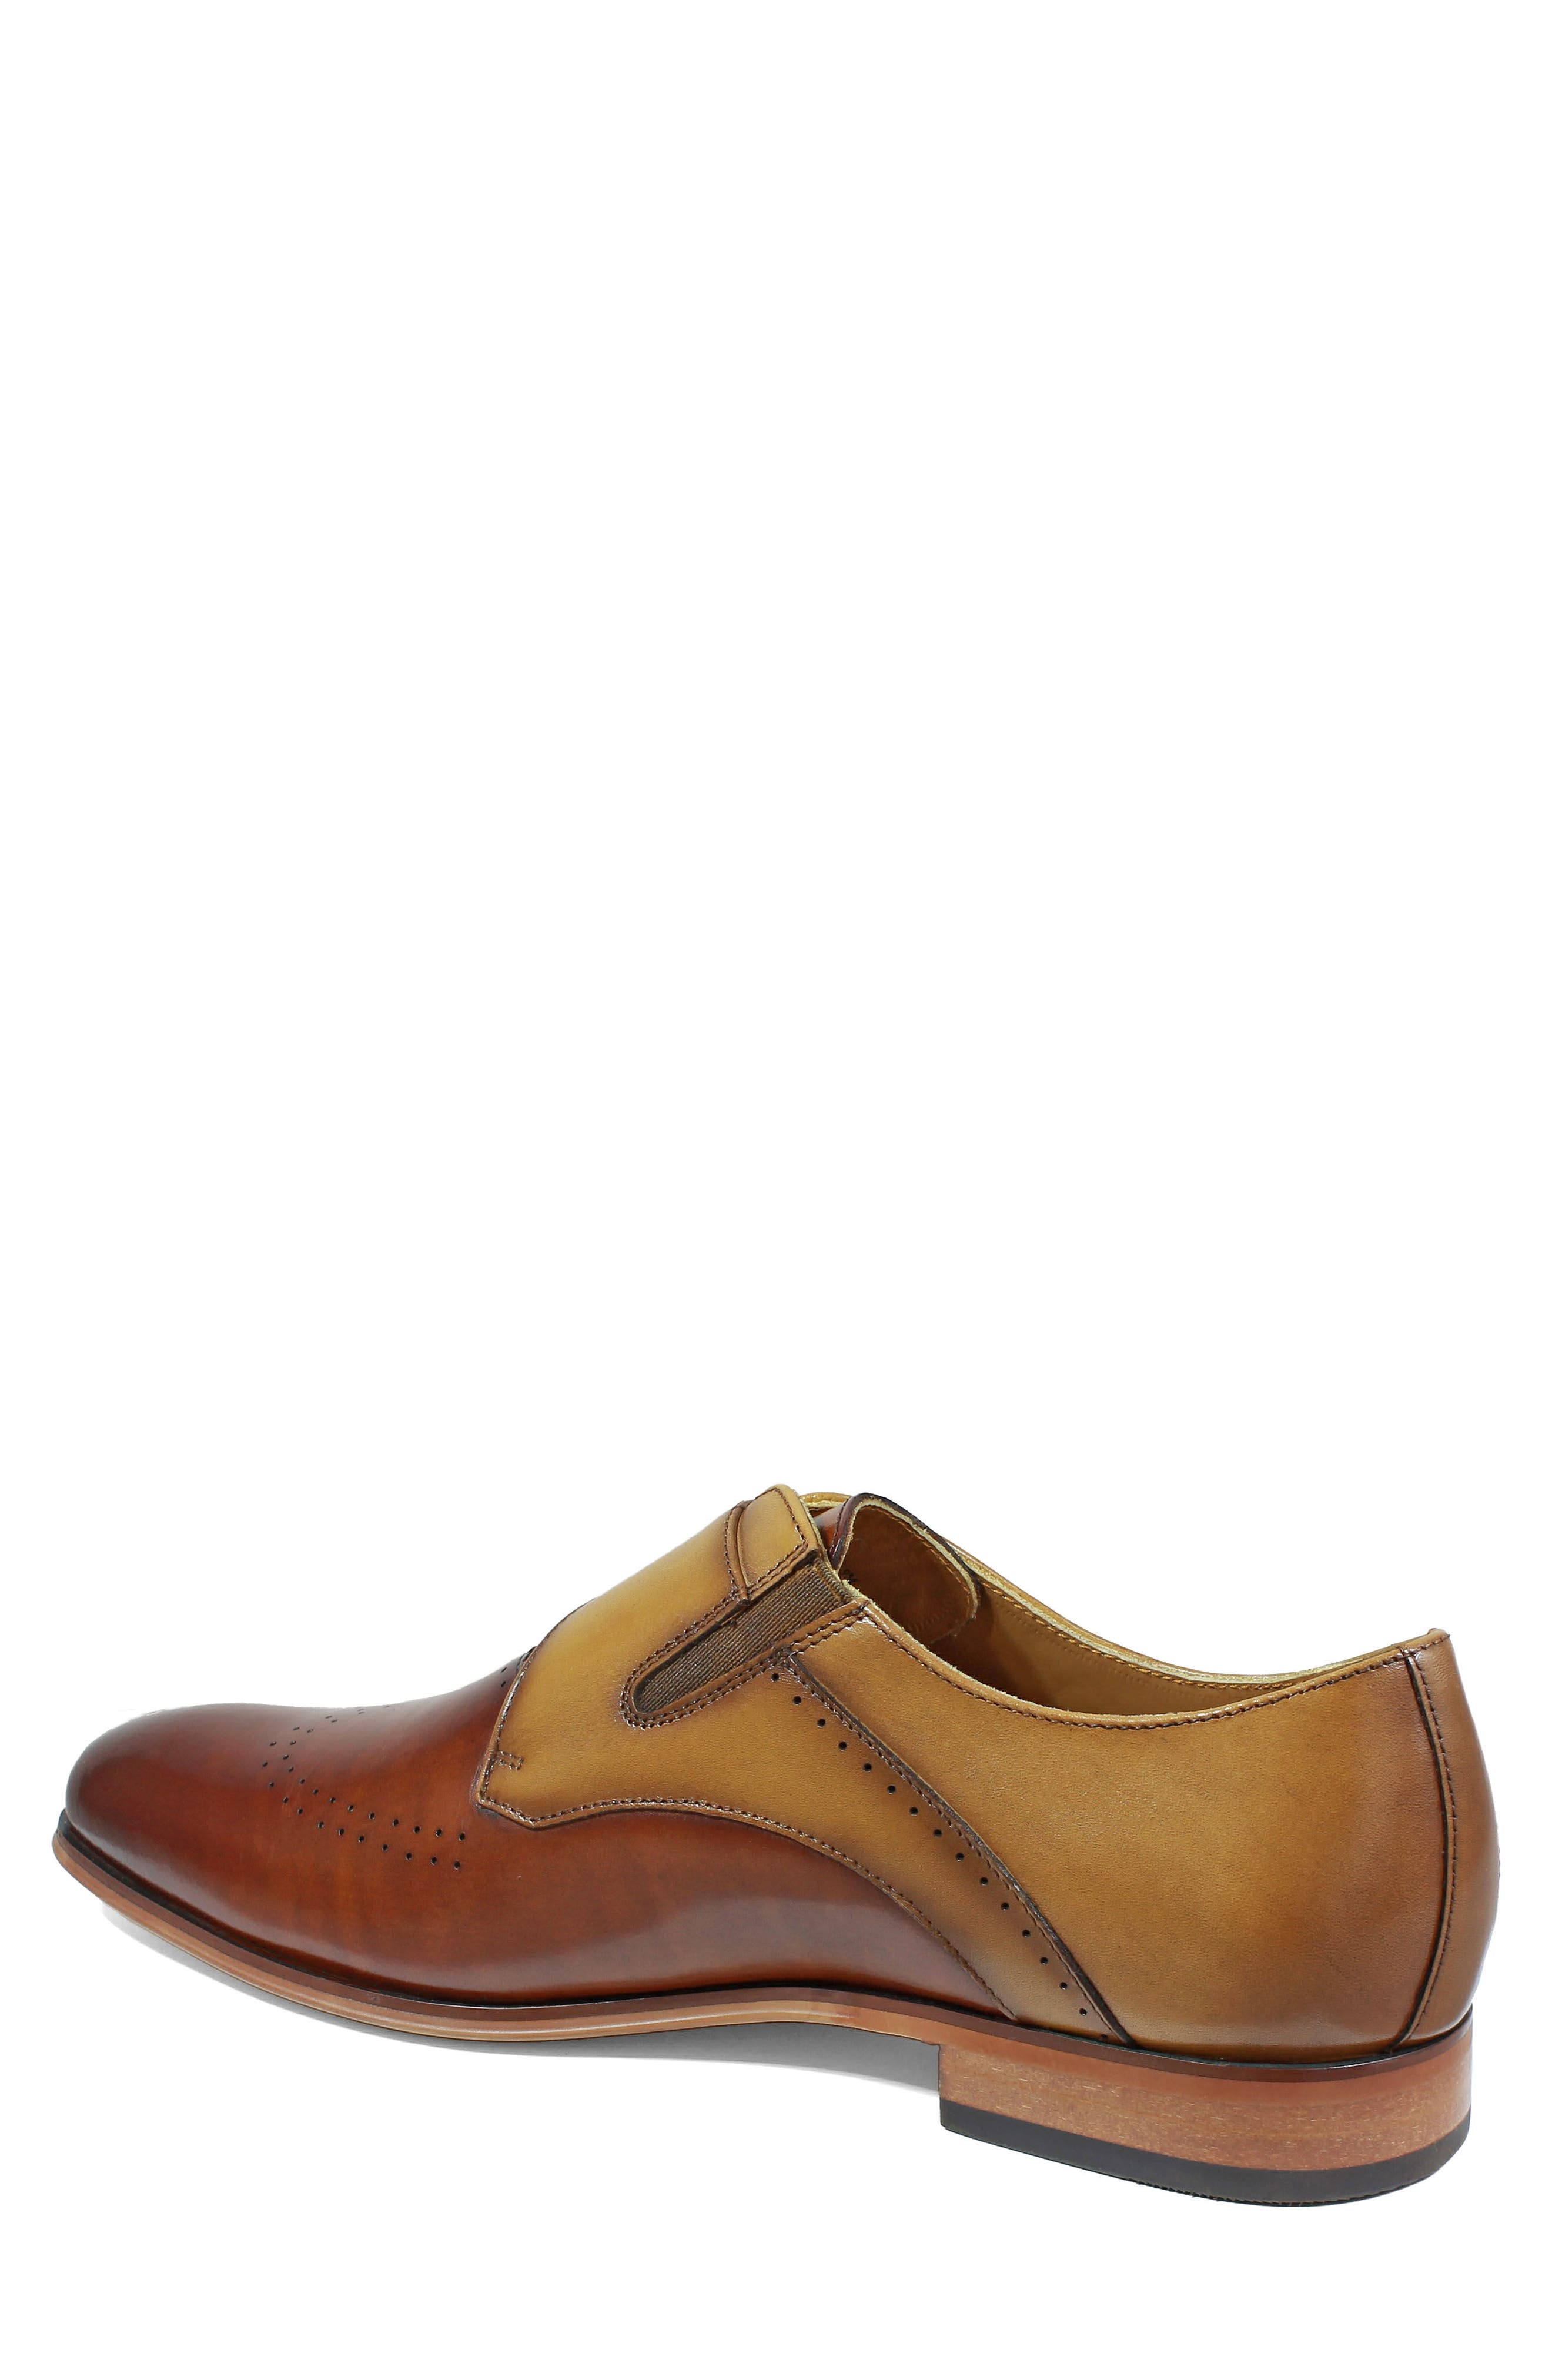 STACY ADAMS, Saxton Perforated Monk Strap Shoe, Alternate thumbnail 2, color, 201